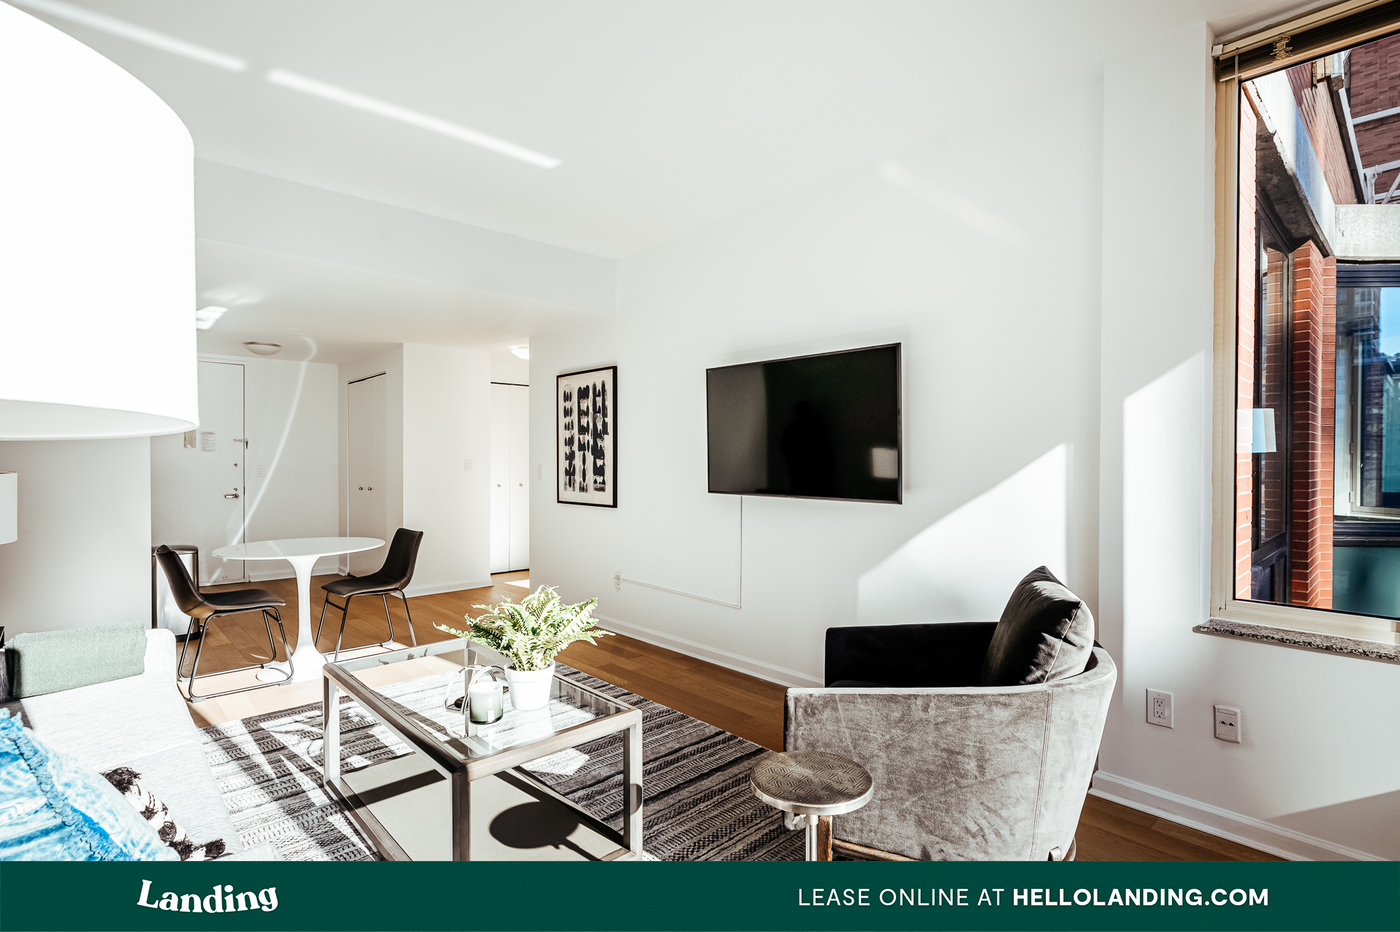 Lofts and Upper Lofts at Canal Walk for rent